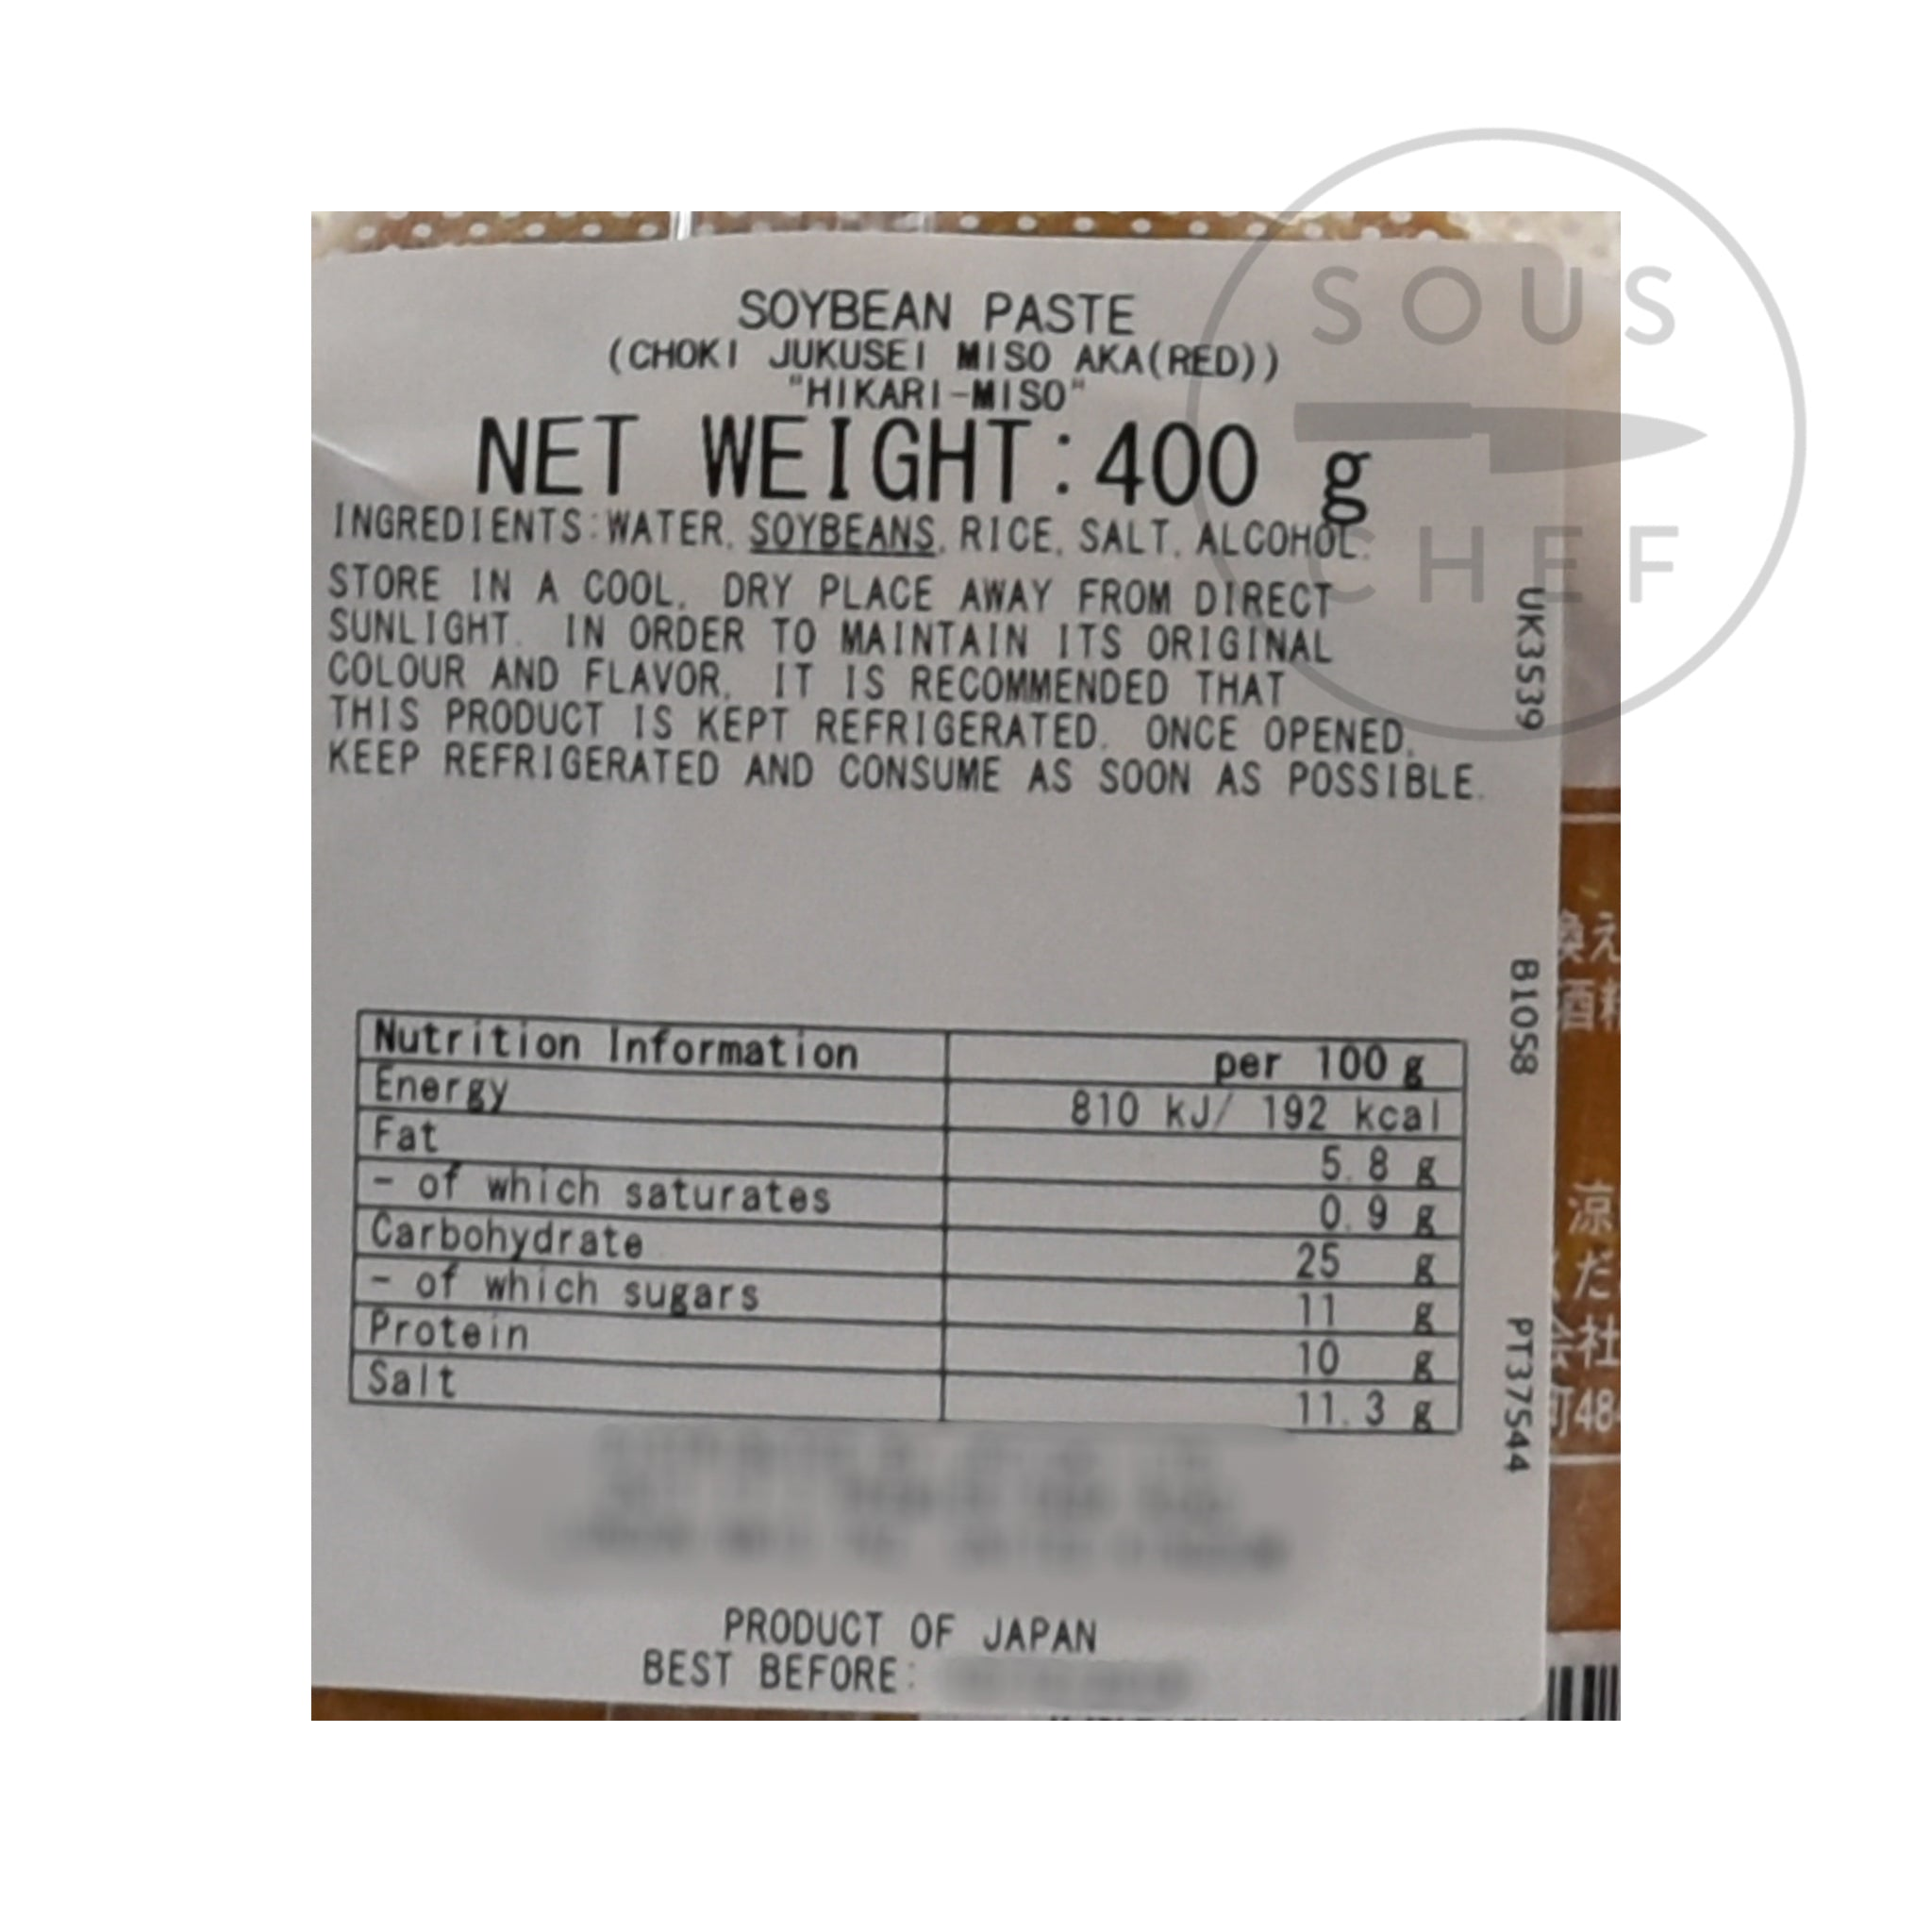 Red Miso Paste 400g nutritional information ingredients